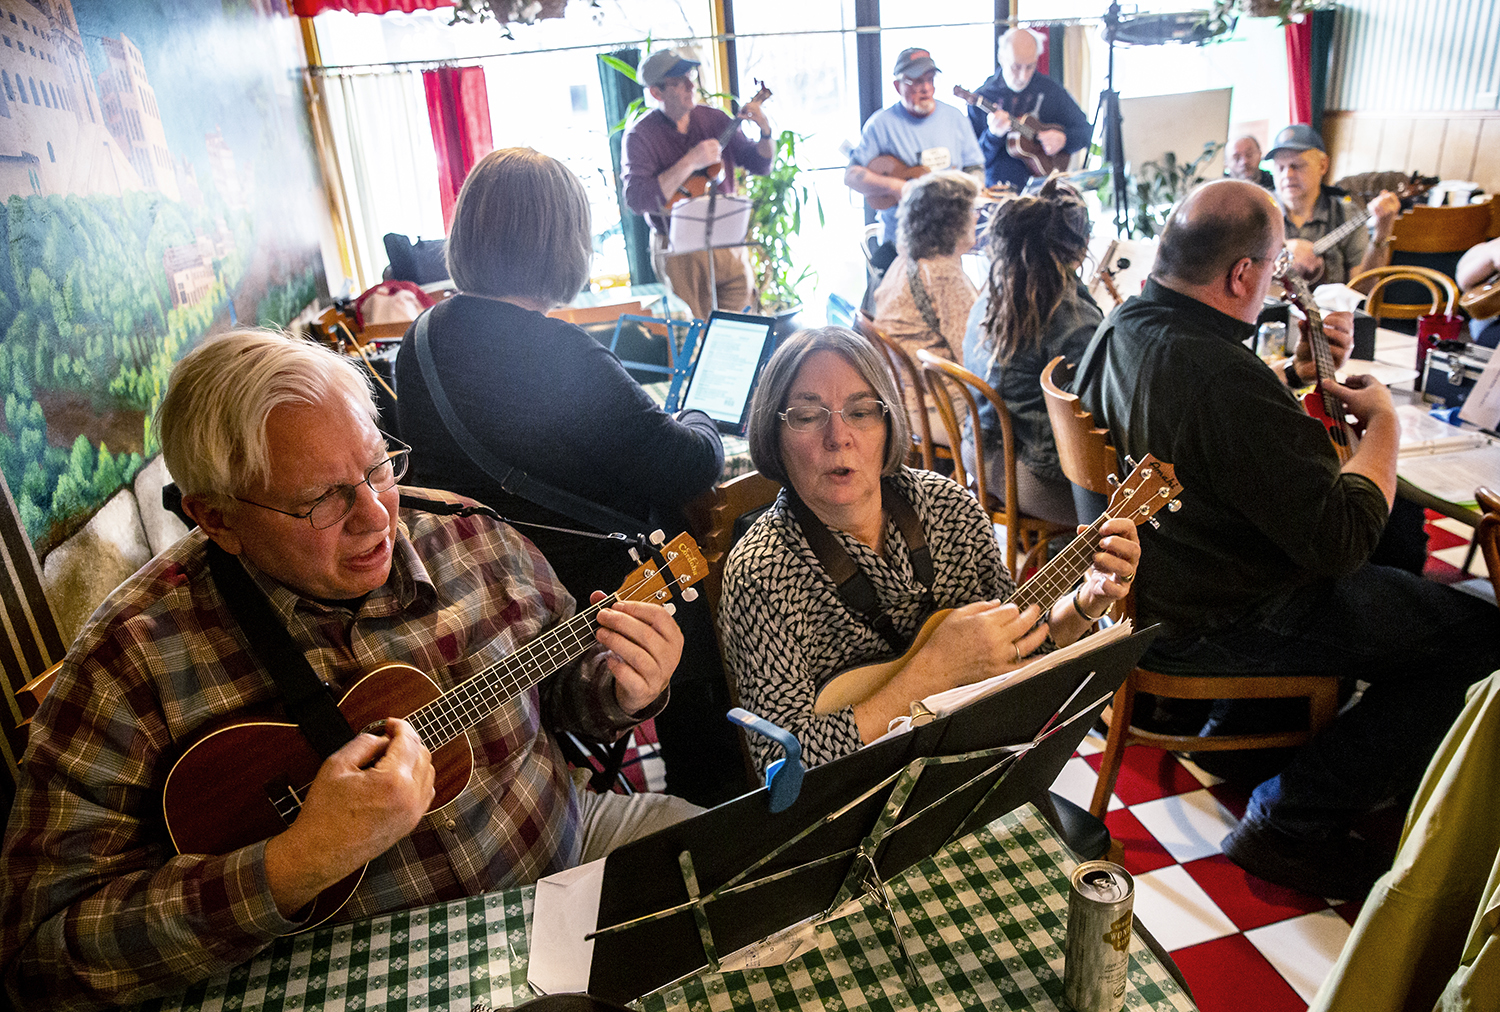 Keith MIller, left, and his his wife Bethany Spielman, right,  perform on the ukulele with the Springfield Uketopians during their monthly jam at Joe Gallina's Pizza, Saturday, March 9, 2019, in Springfield, Ill. This particular monthly jam was the groups sixth anniversary of coming together as a group to enjoy the ukulele and started with a group of five people that now has over 100 members. The Springfield Uketopians have members from all over the state that travel to sing and play the ukulele during their monthly jam on the second Saturday of each month at Joe Gallina's Pizza. [Justin L. Fowler/The State Journal-Register]